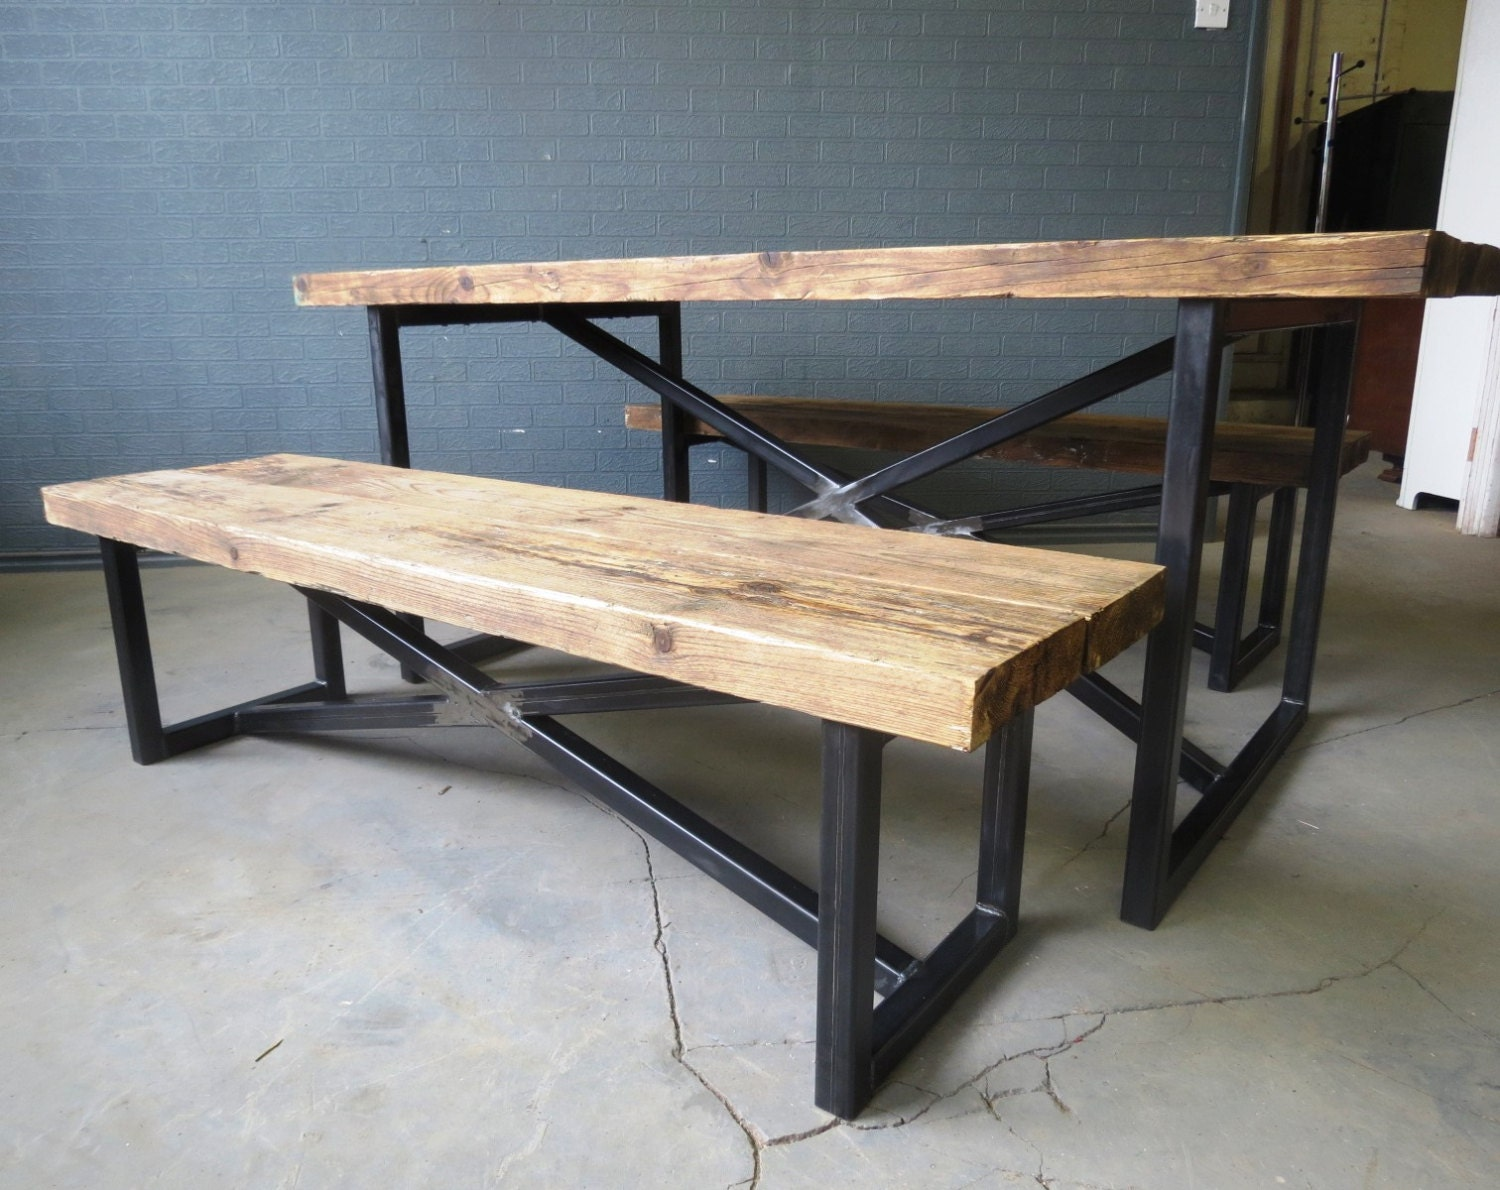 Reclaimed industrial chic x style 6 8 seater wood by - Table bois et metal industriel ...